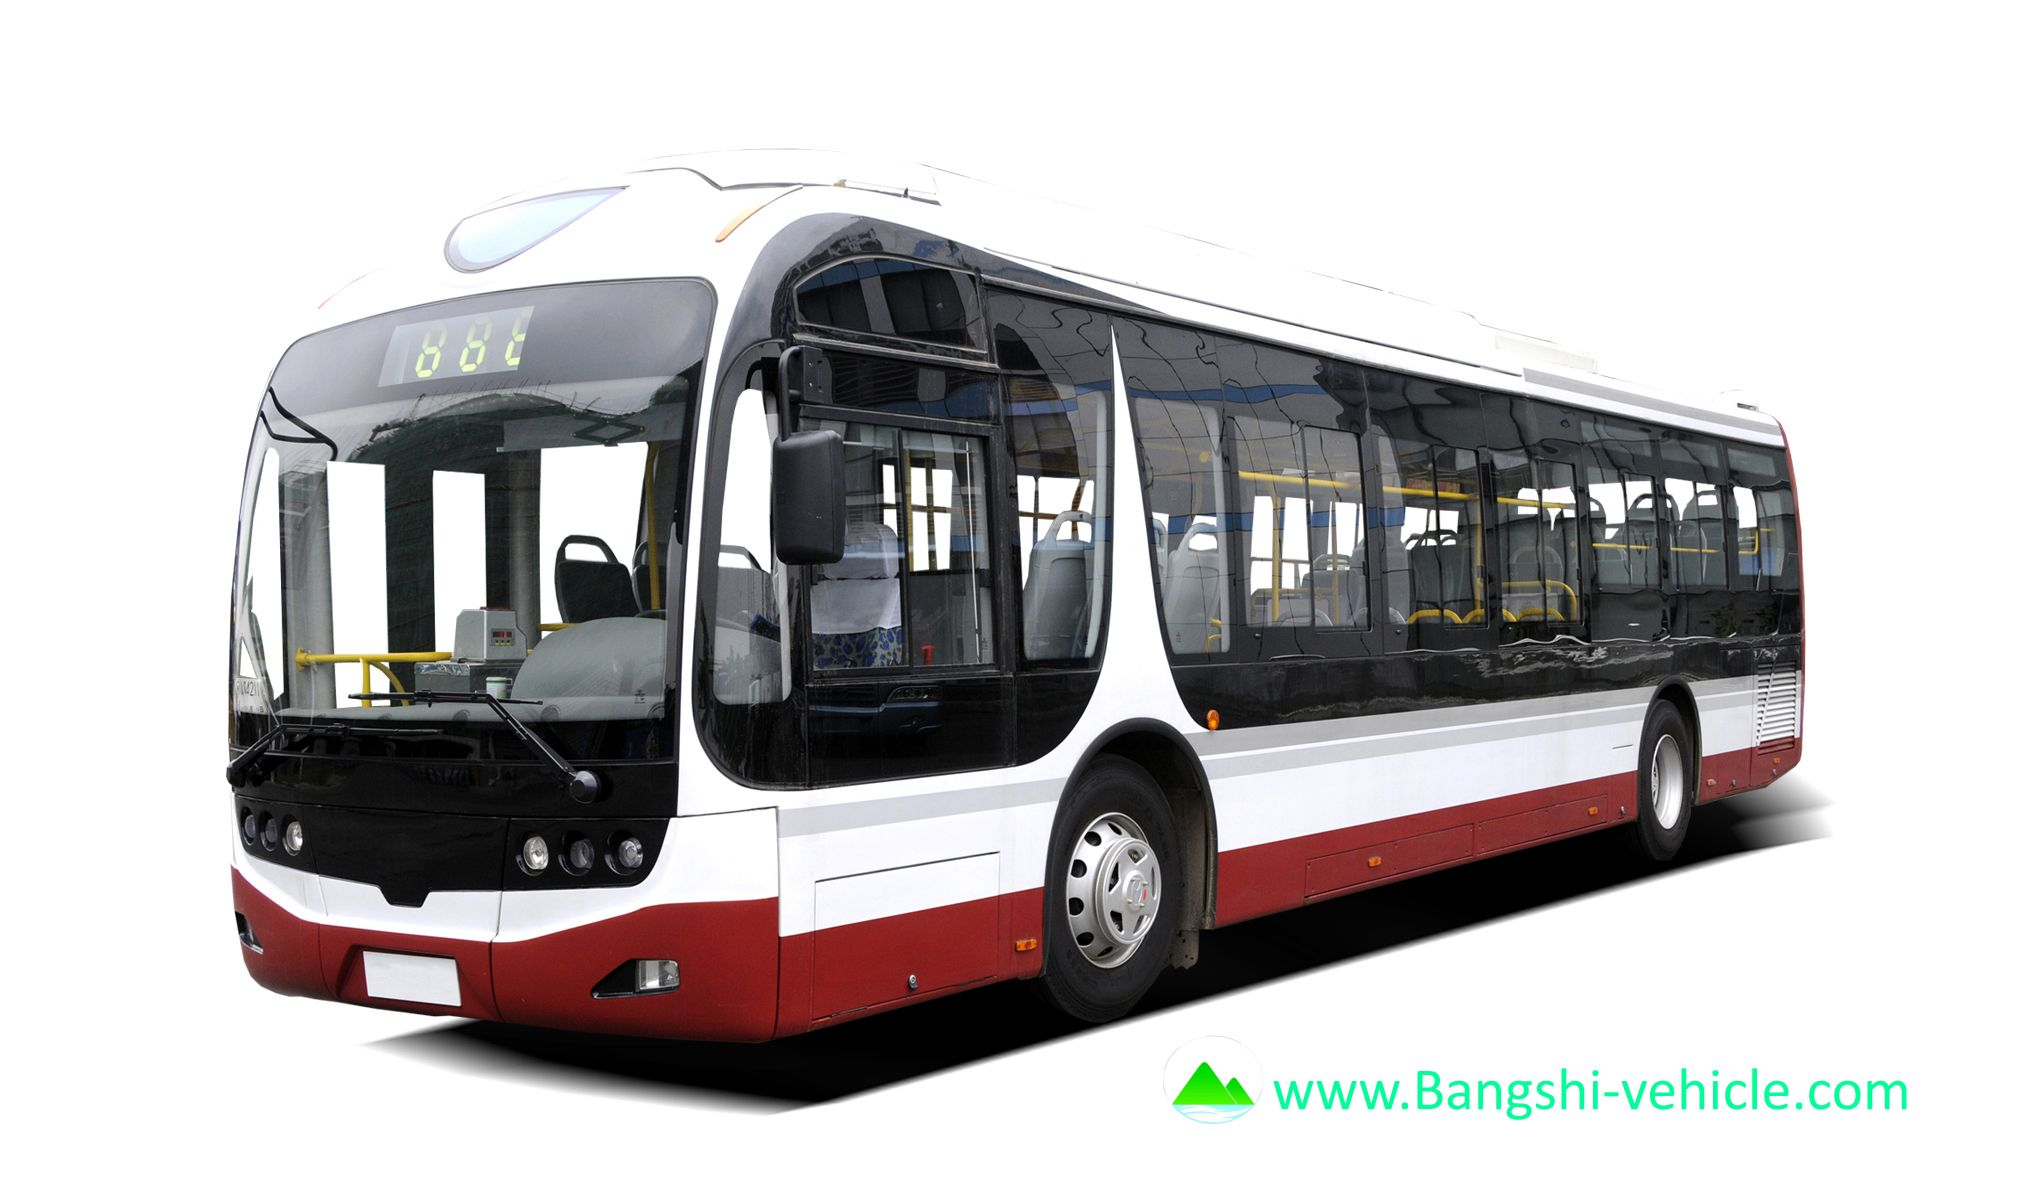 City Bus 12m Length With 28 45 Seats Boundary Dimension Is 12000 2540 3340mm Bus City Vehicles